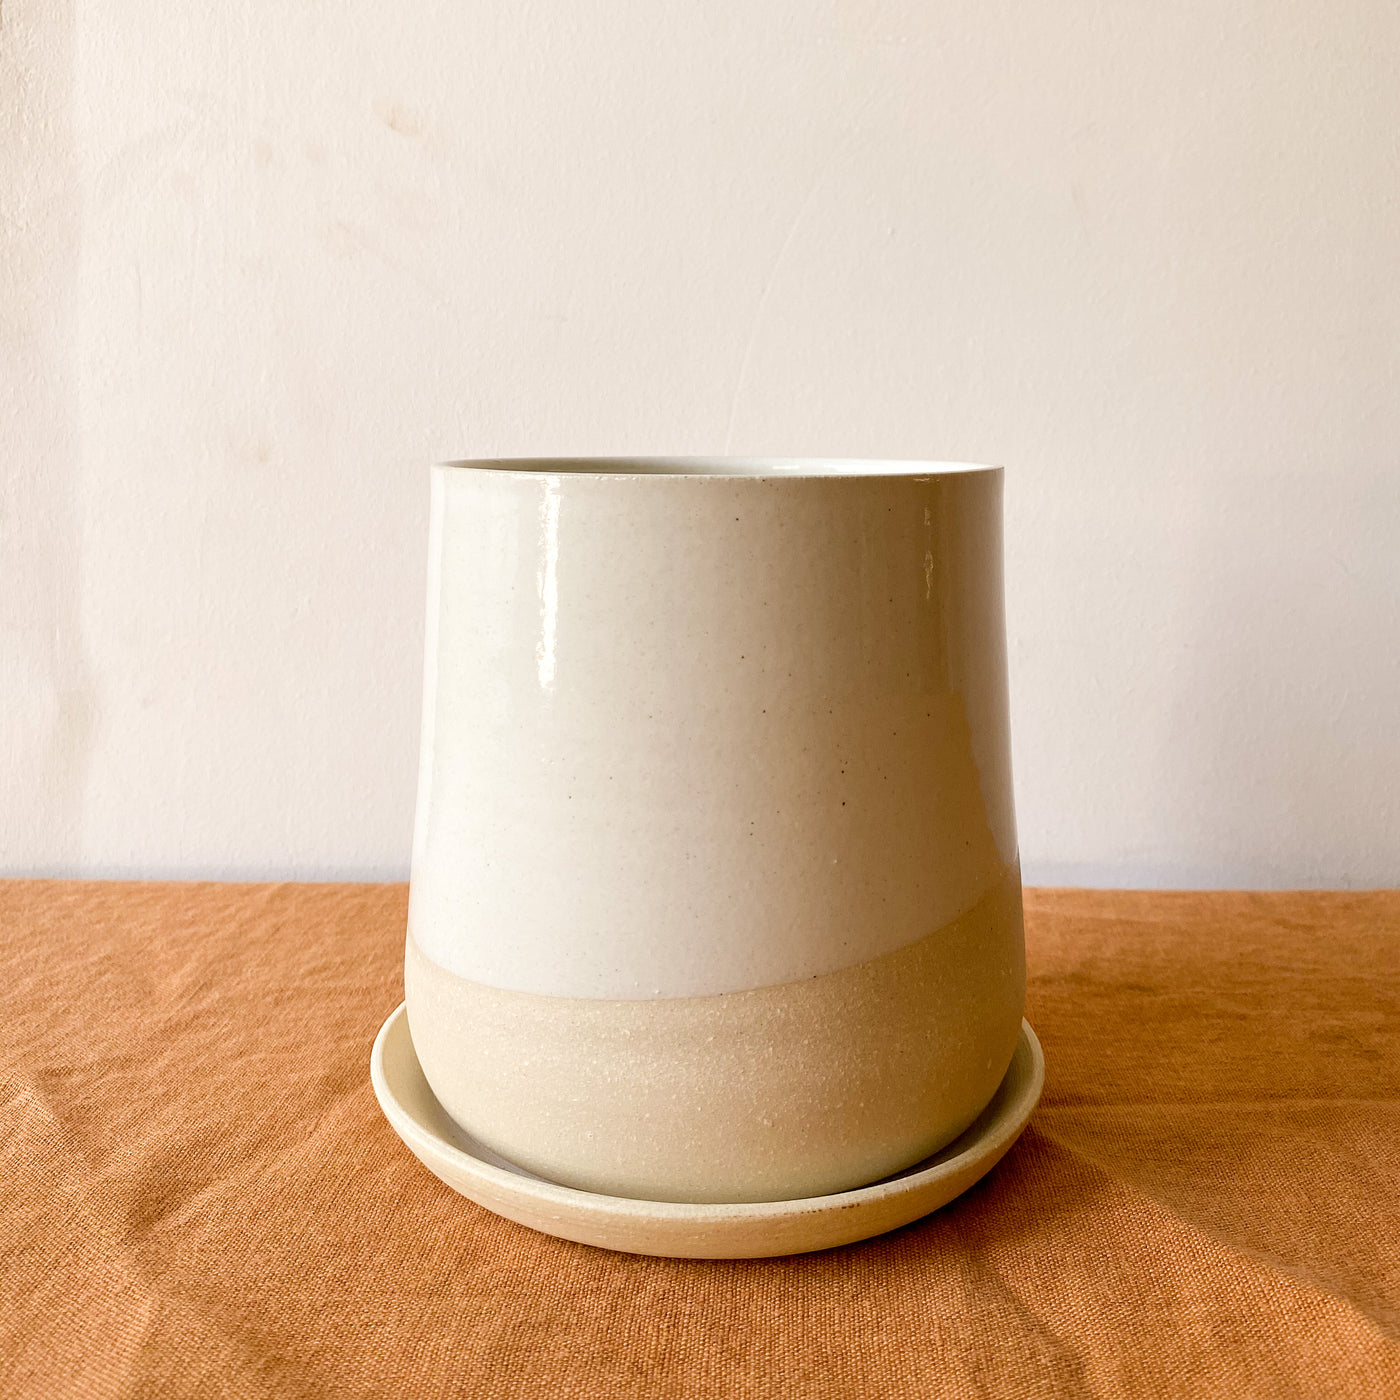 Held: Form Planter #2 in Light Stoneware